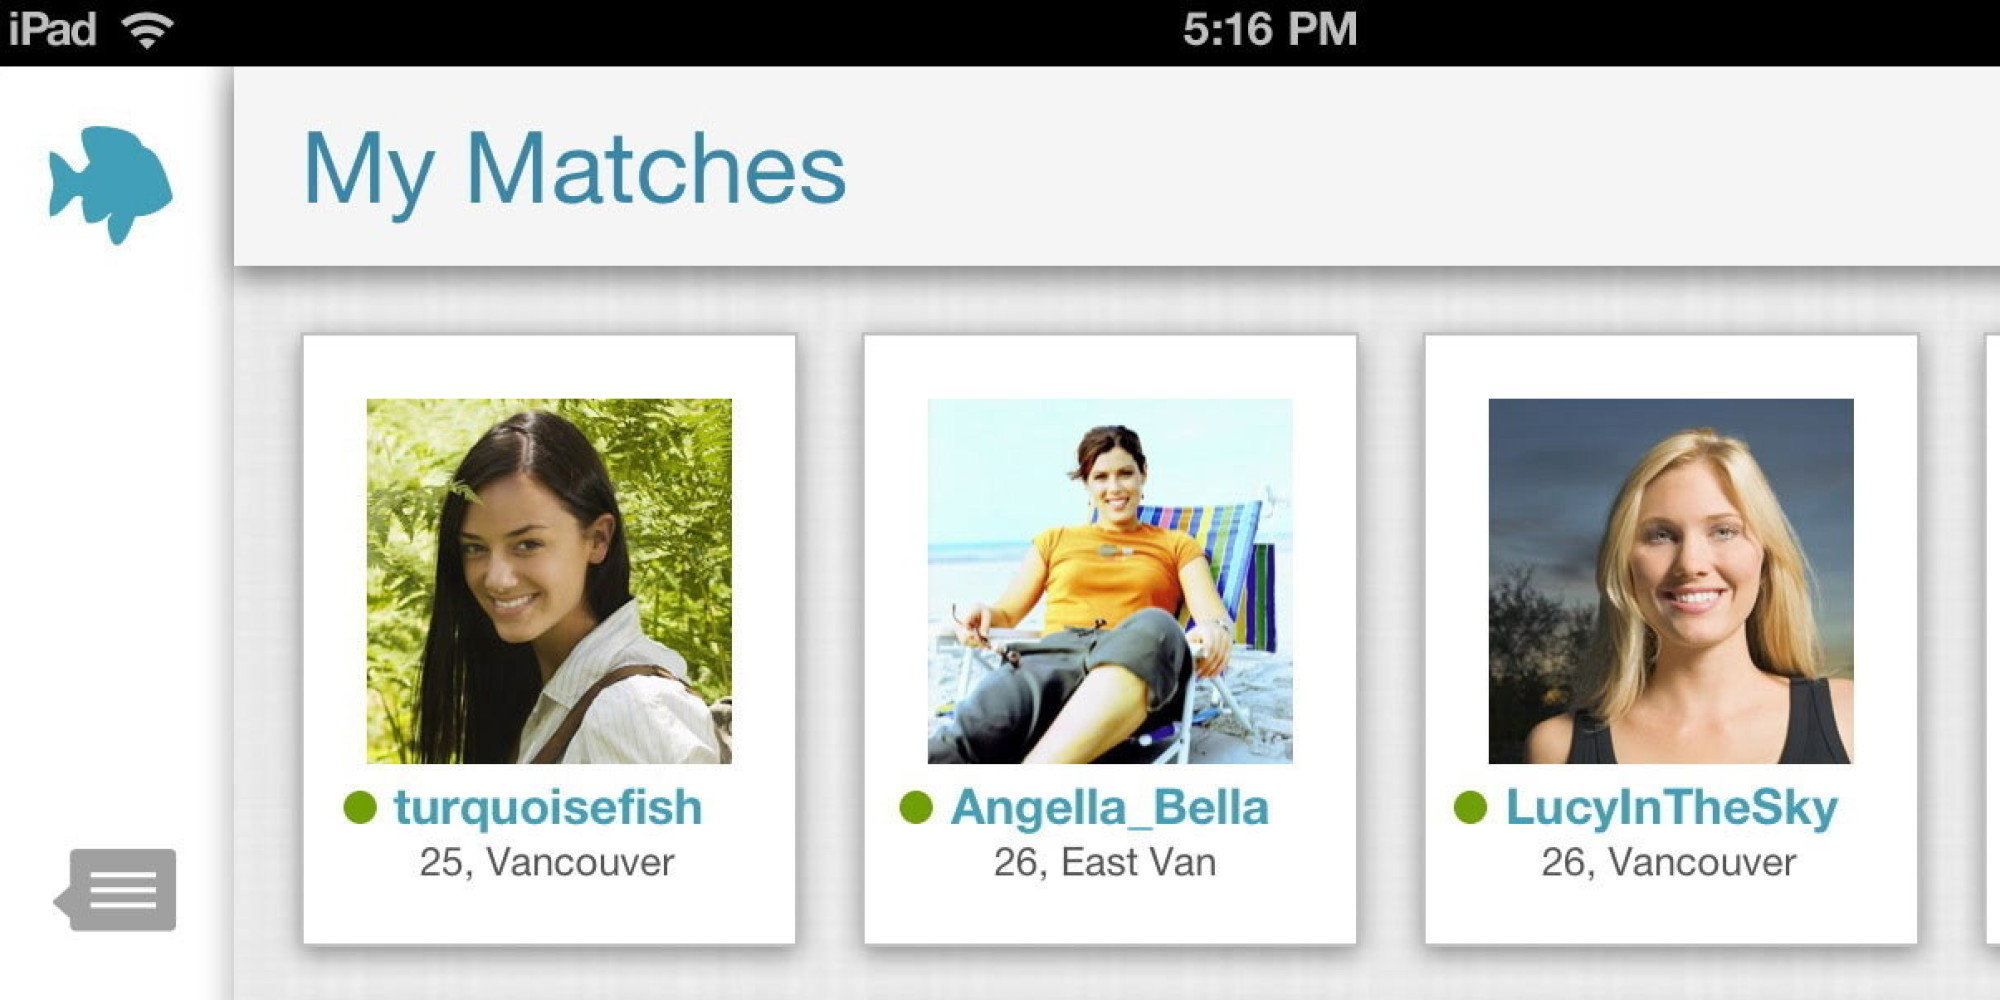 Plentyoffish Hooks A 48 000 Fine Under Anti Spam Law